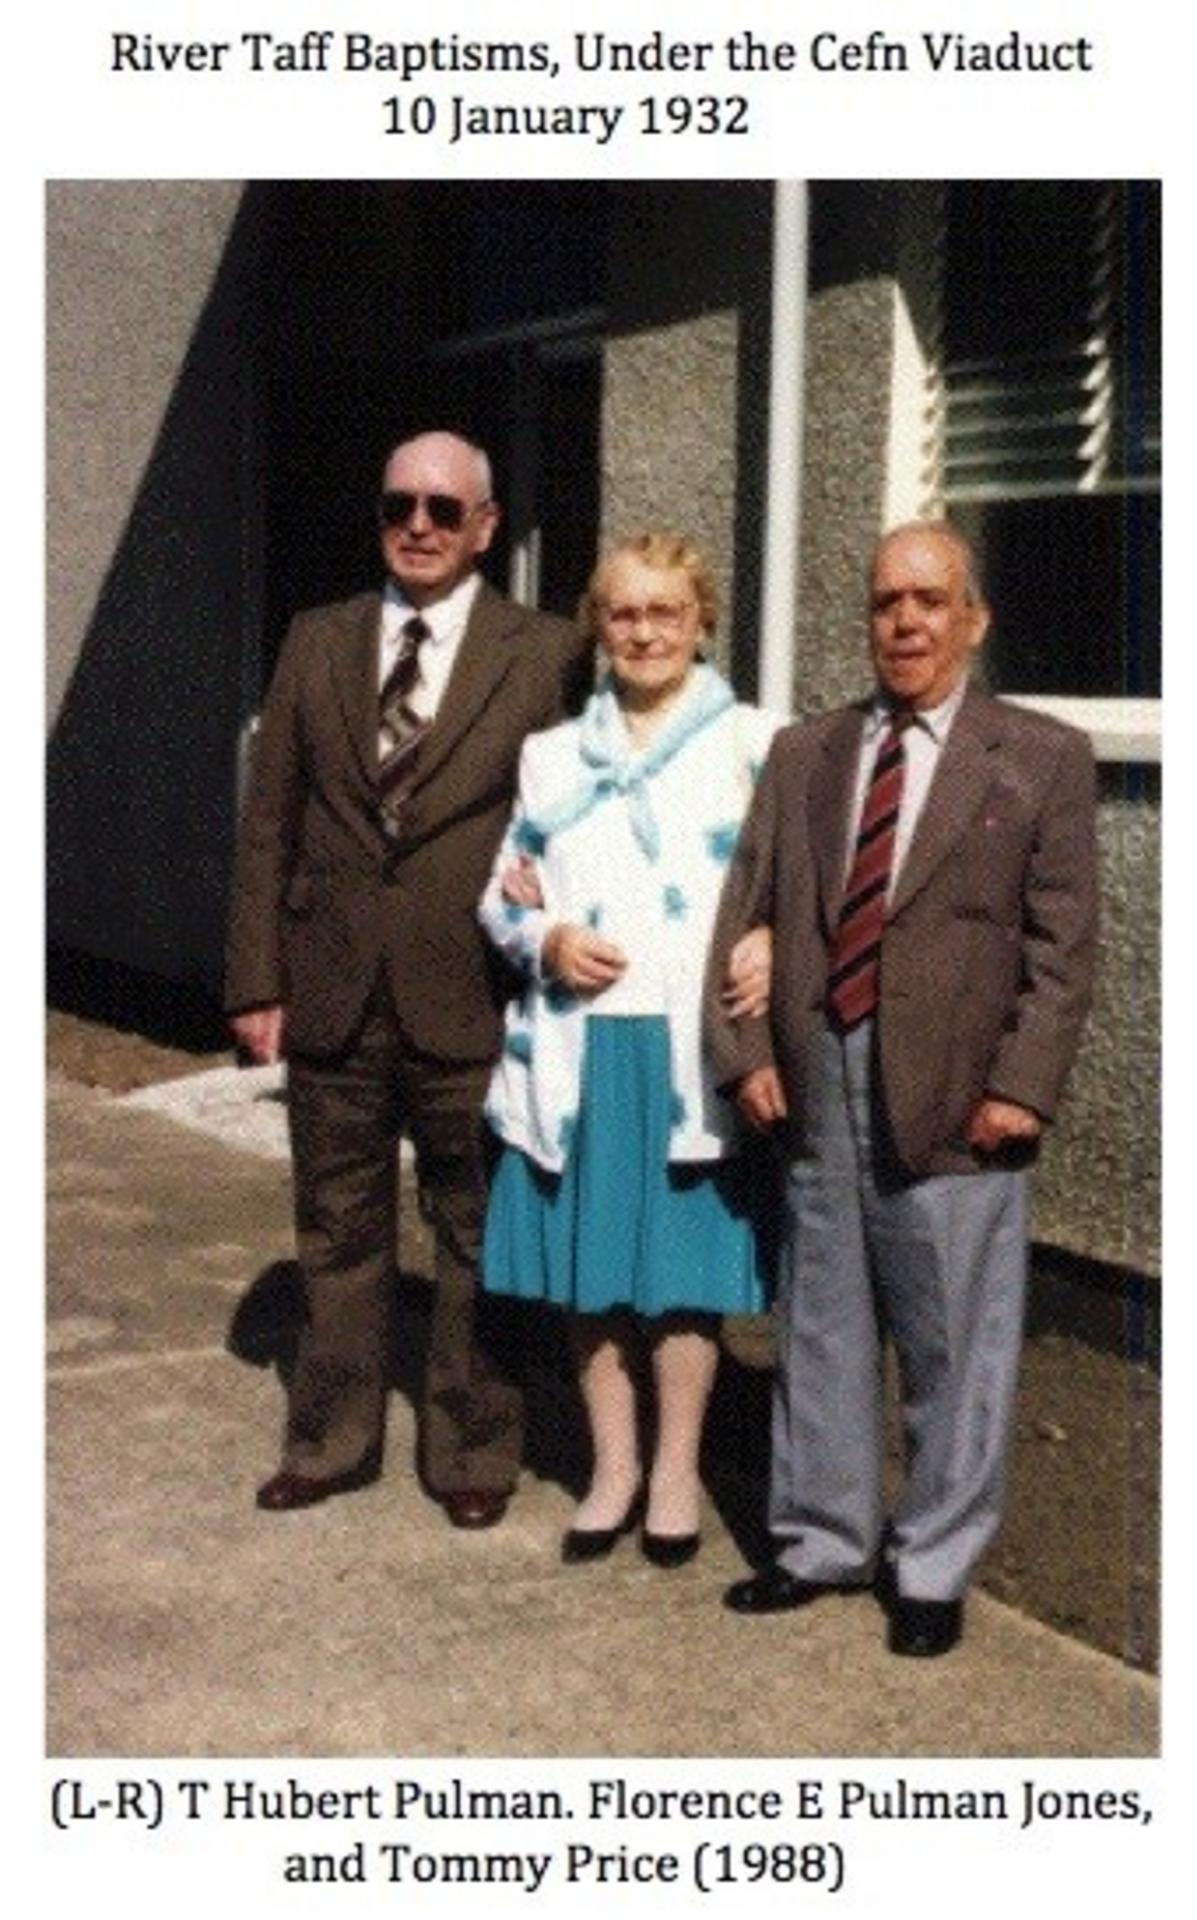 [L-R] Hubert Pulman, Florence E. Pulman Jones and Tommy Price, who were all baptised in the Taff 10th January 1932, pictured here in 1988